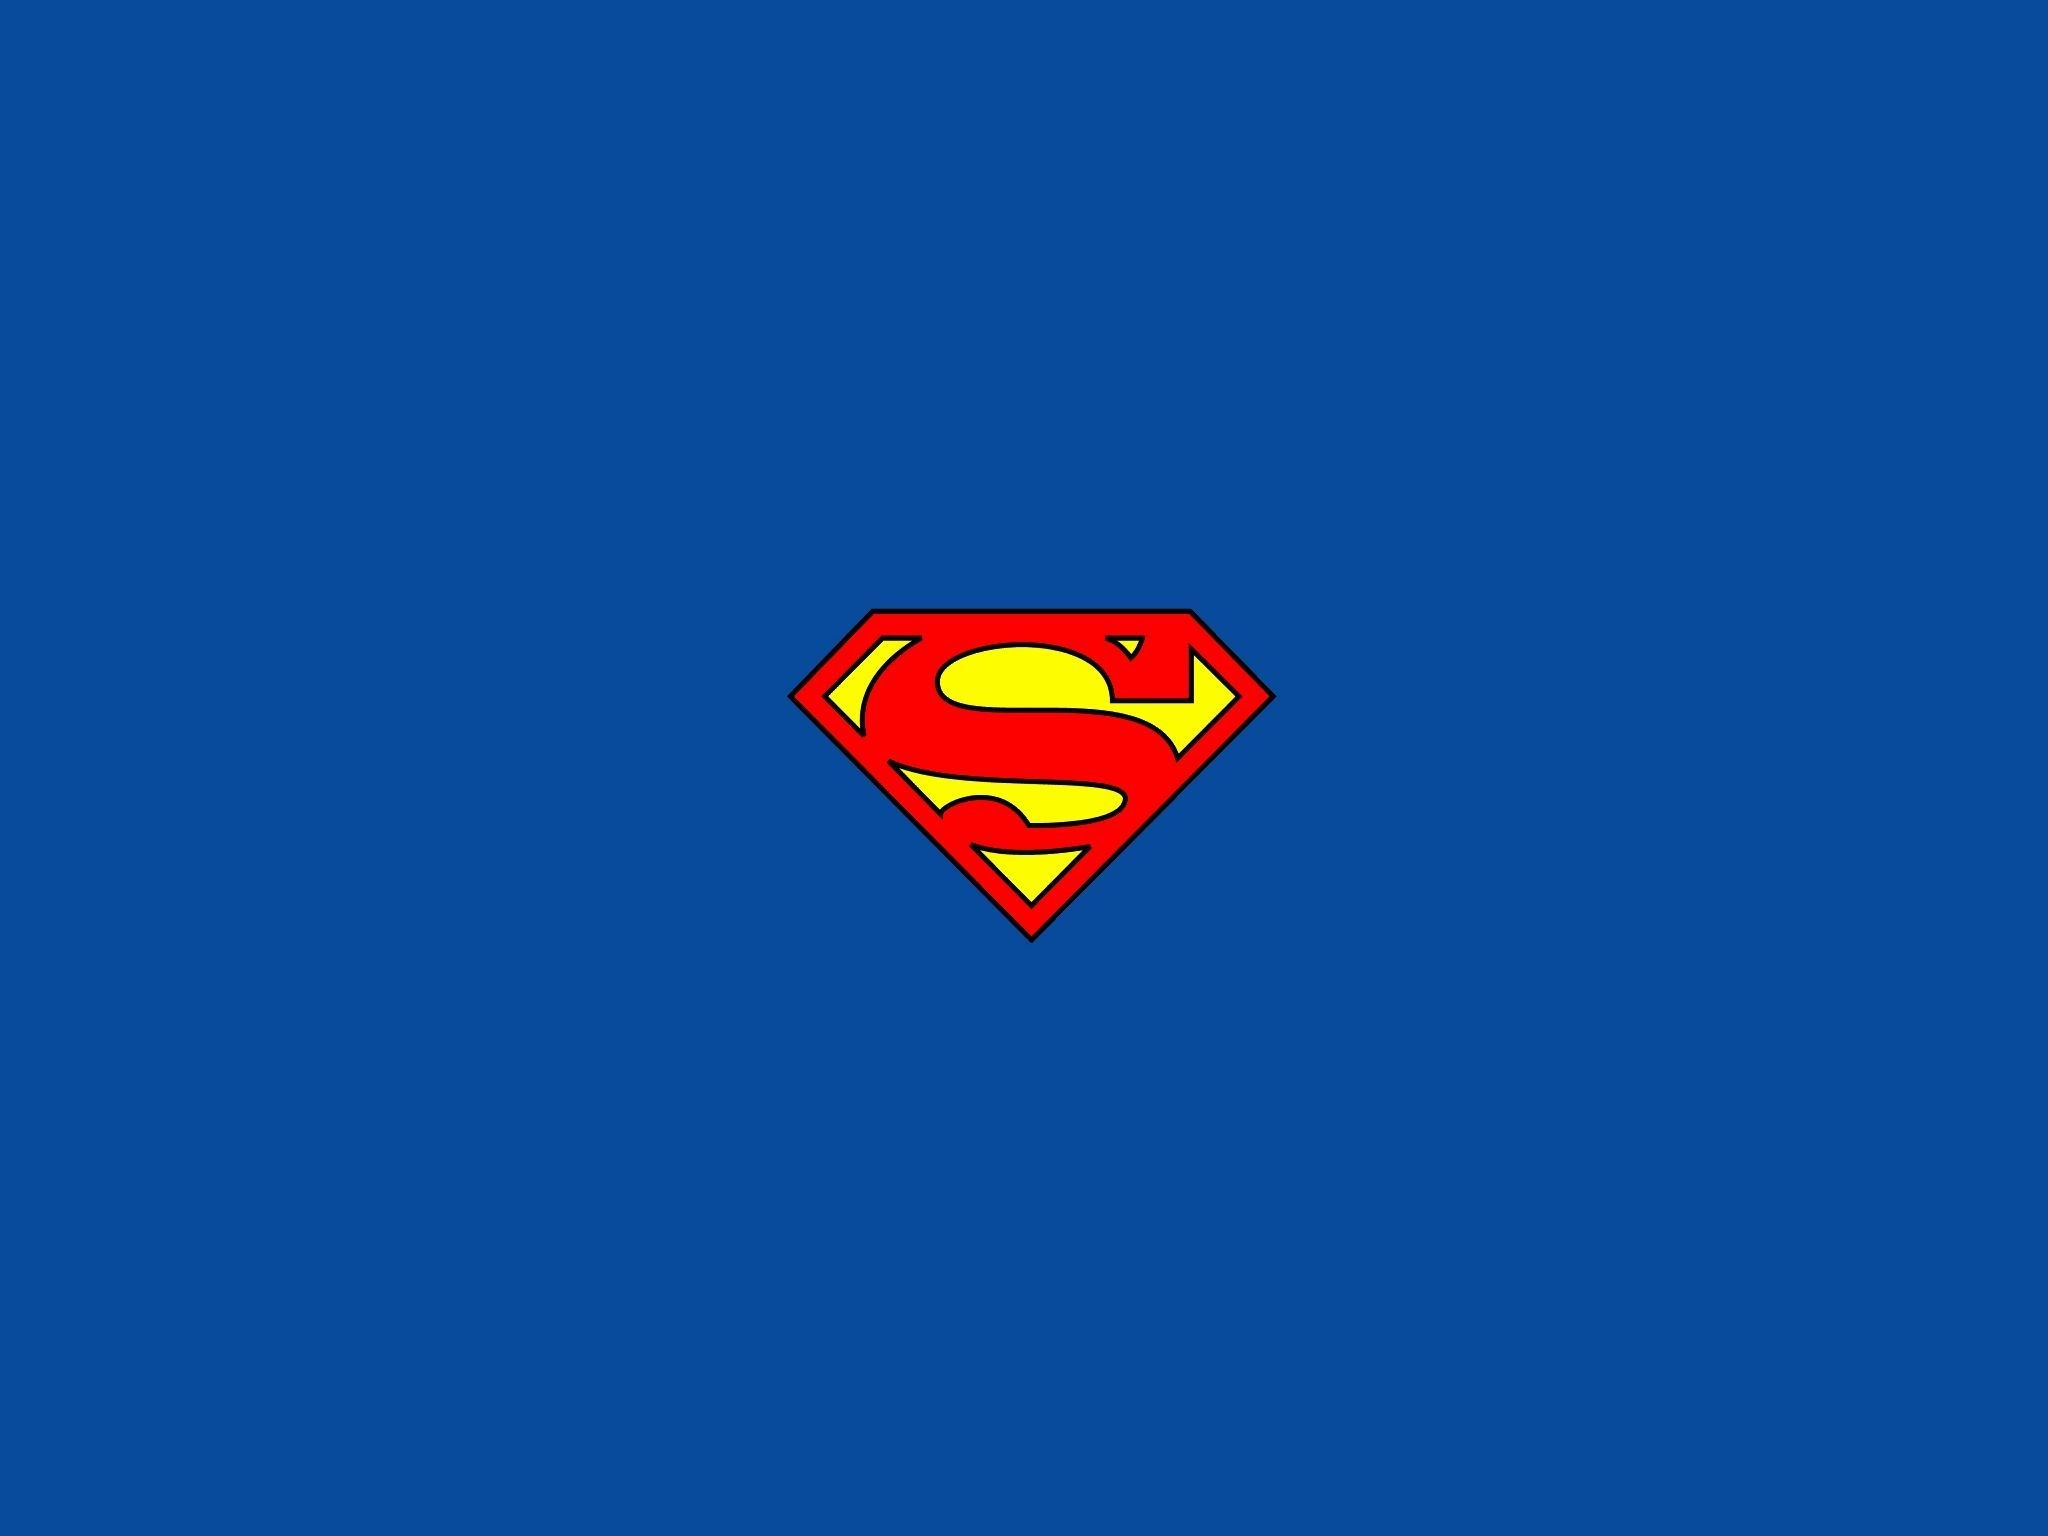 2048x1536 Superman Logo Wallpapers Hd As Wallpaper HD